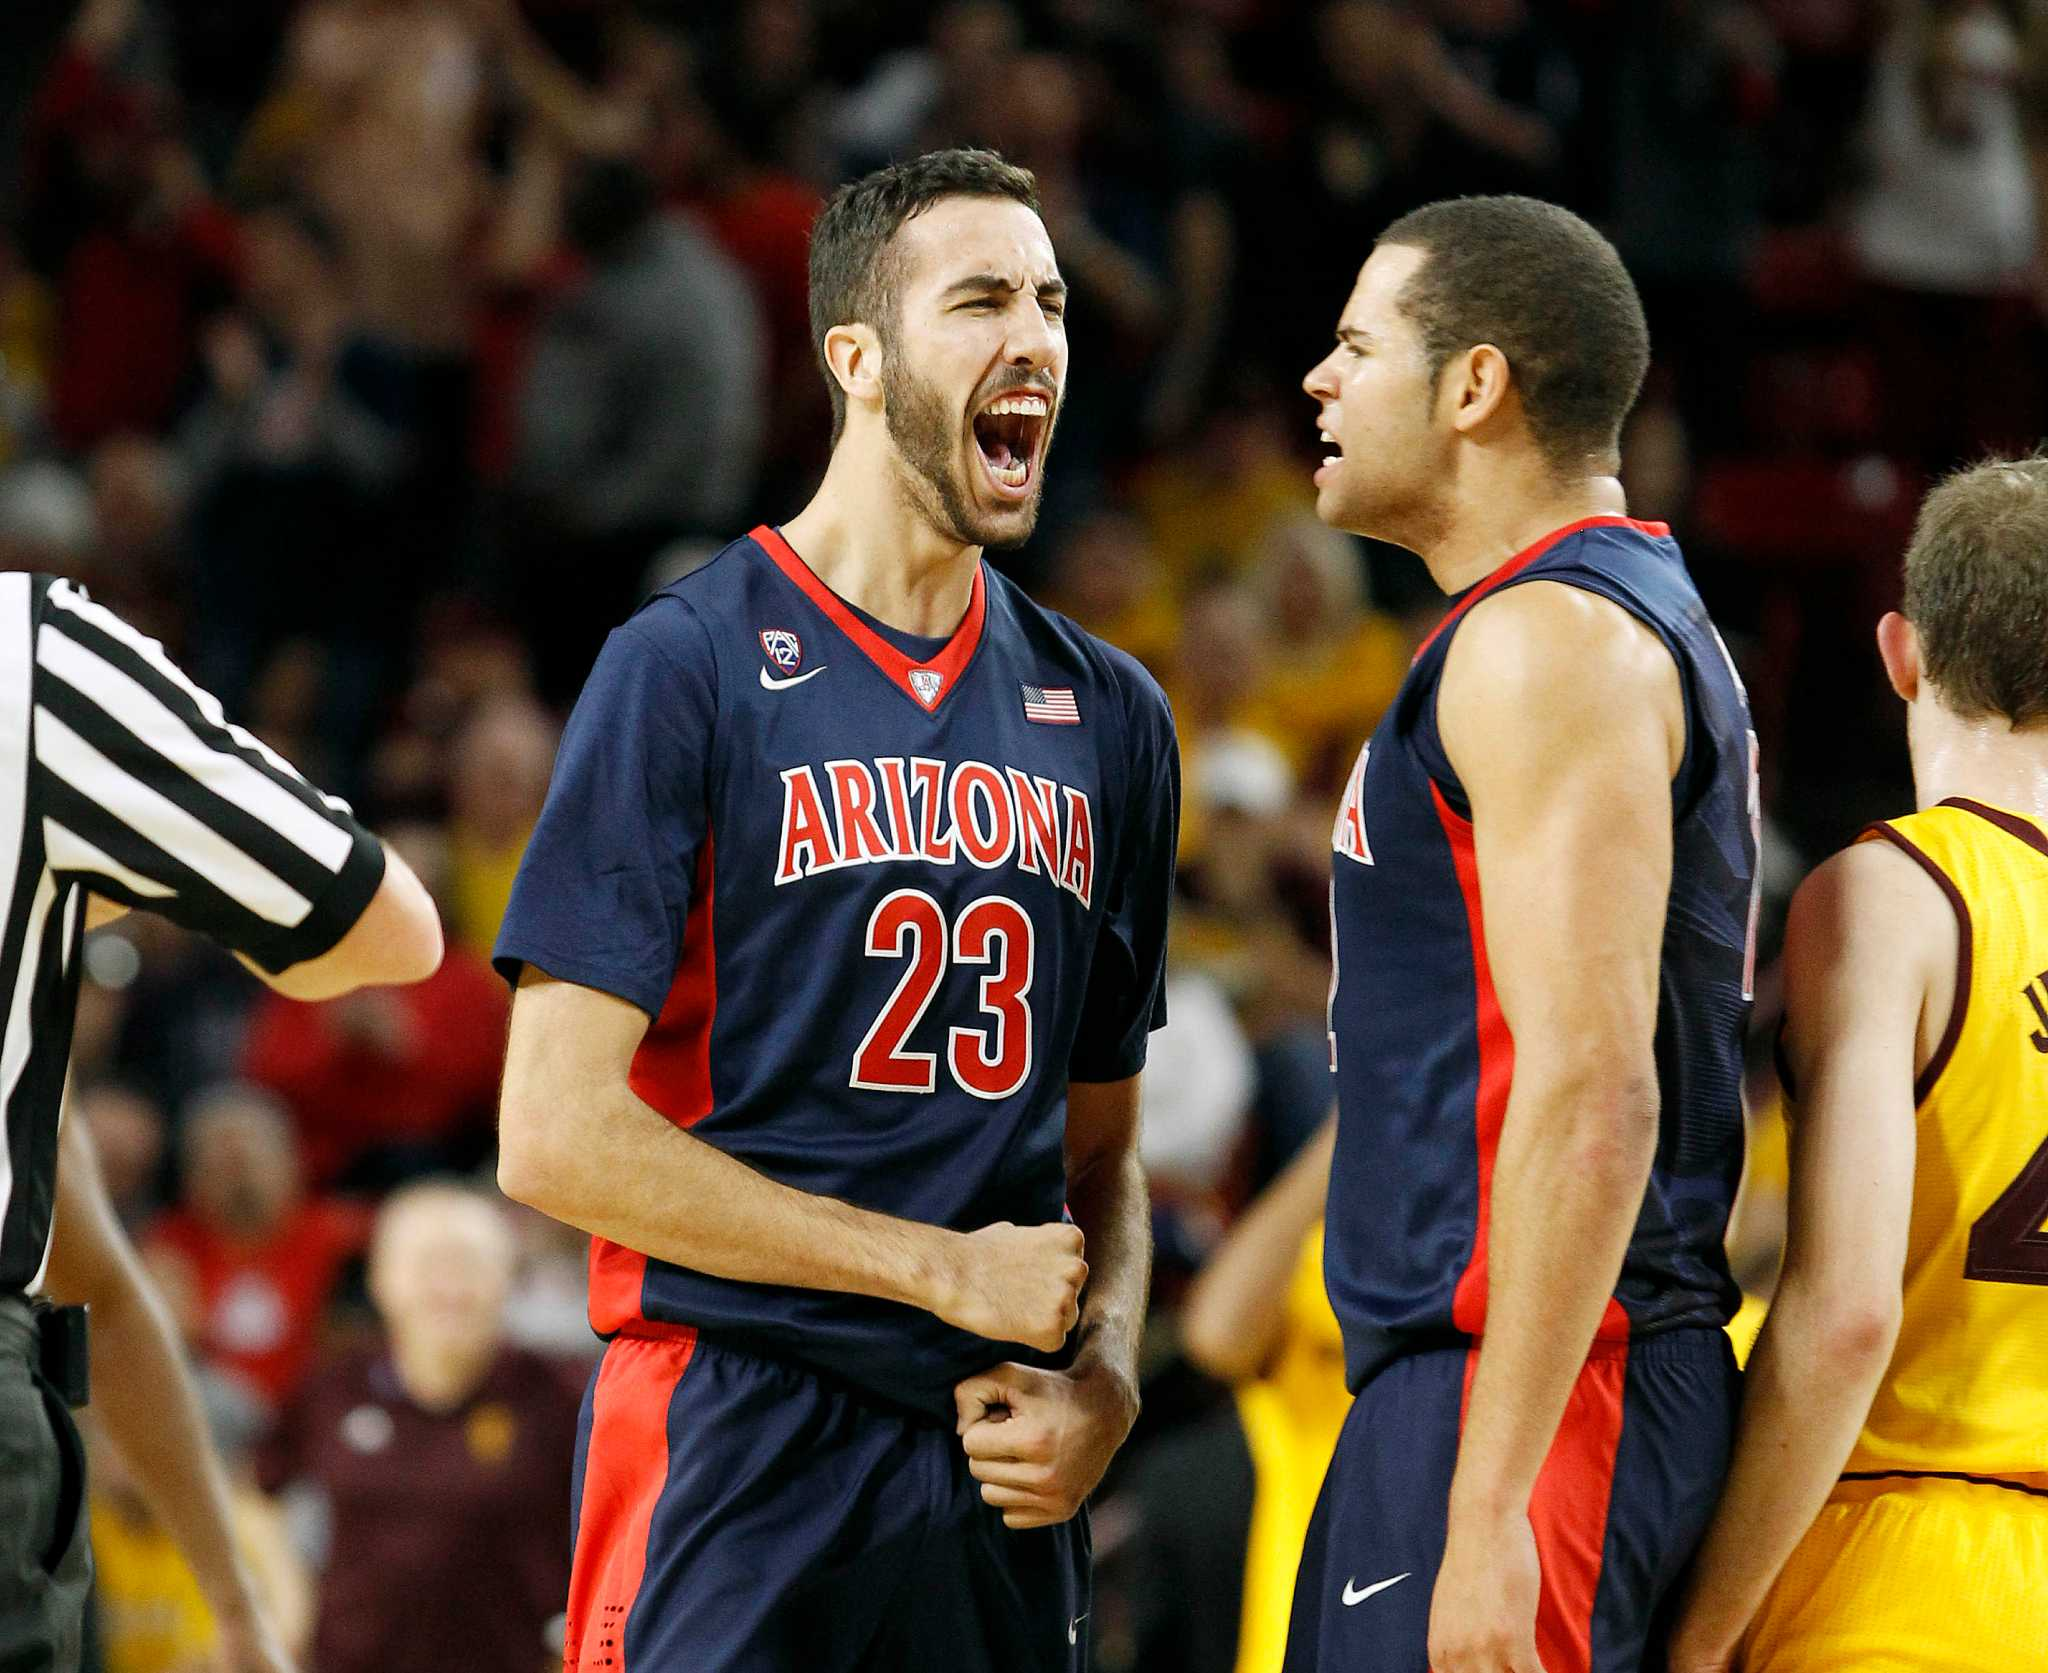 Ampwom who's in, who's out of ncaa tournament field